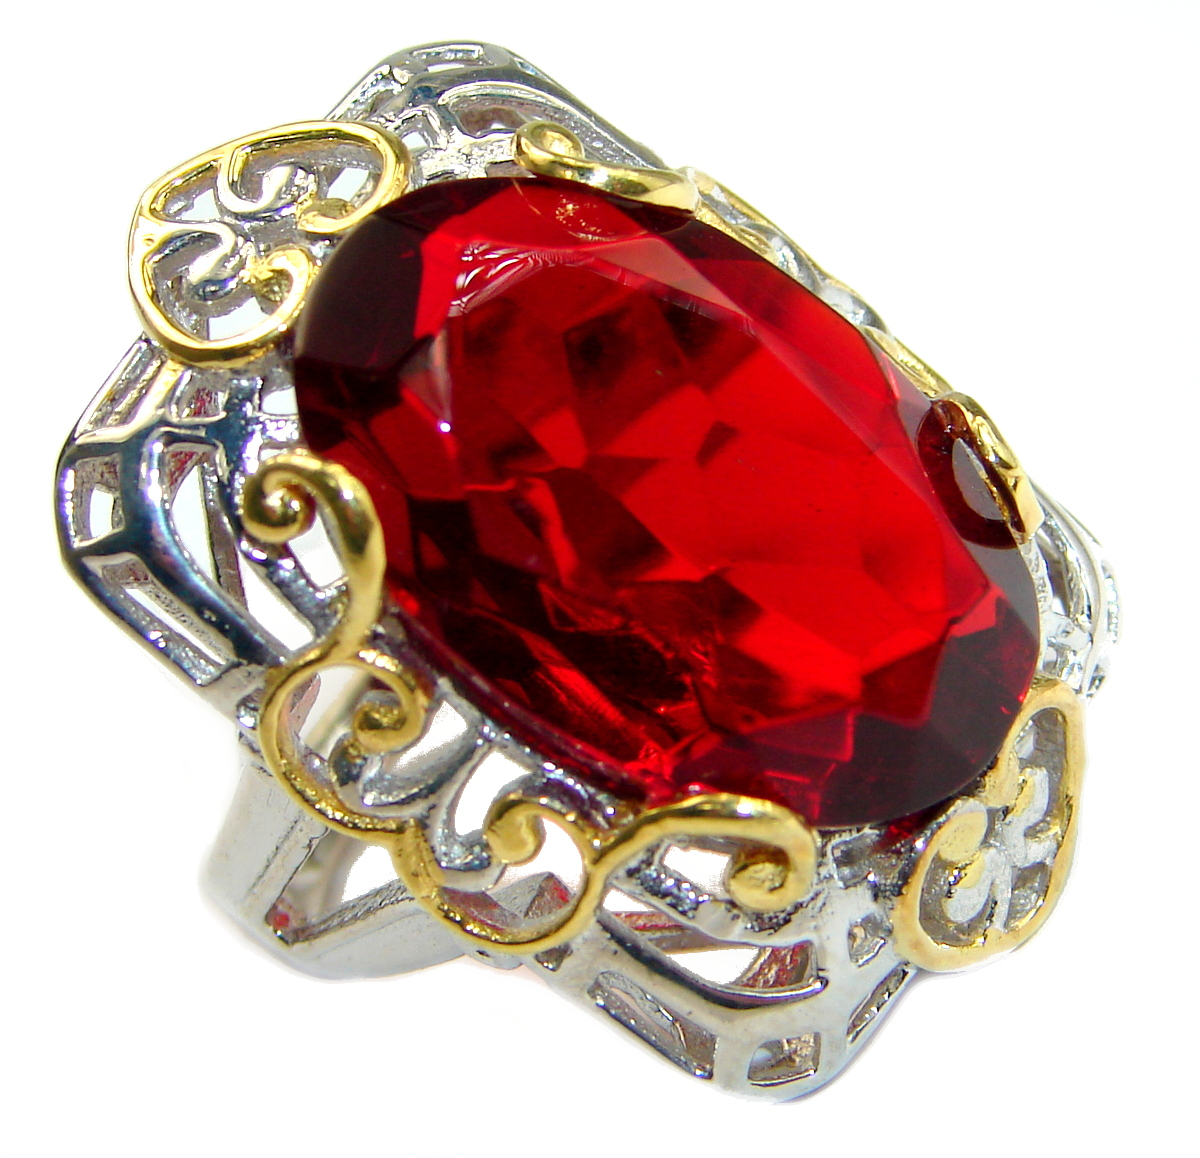 Ruby color Quartz Topaz two tones .925 Sterling Silver handcrafted Ring s. 6 1/4